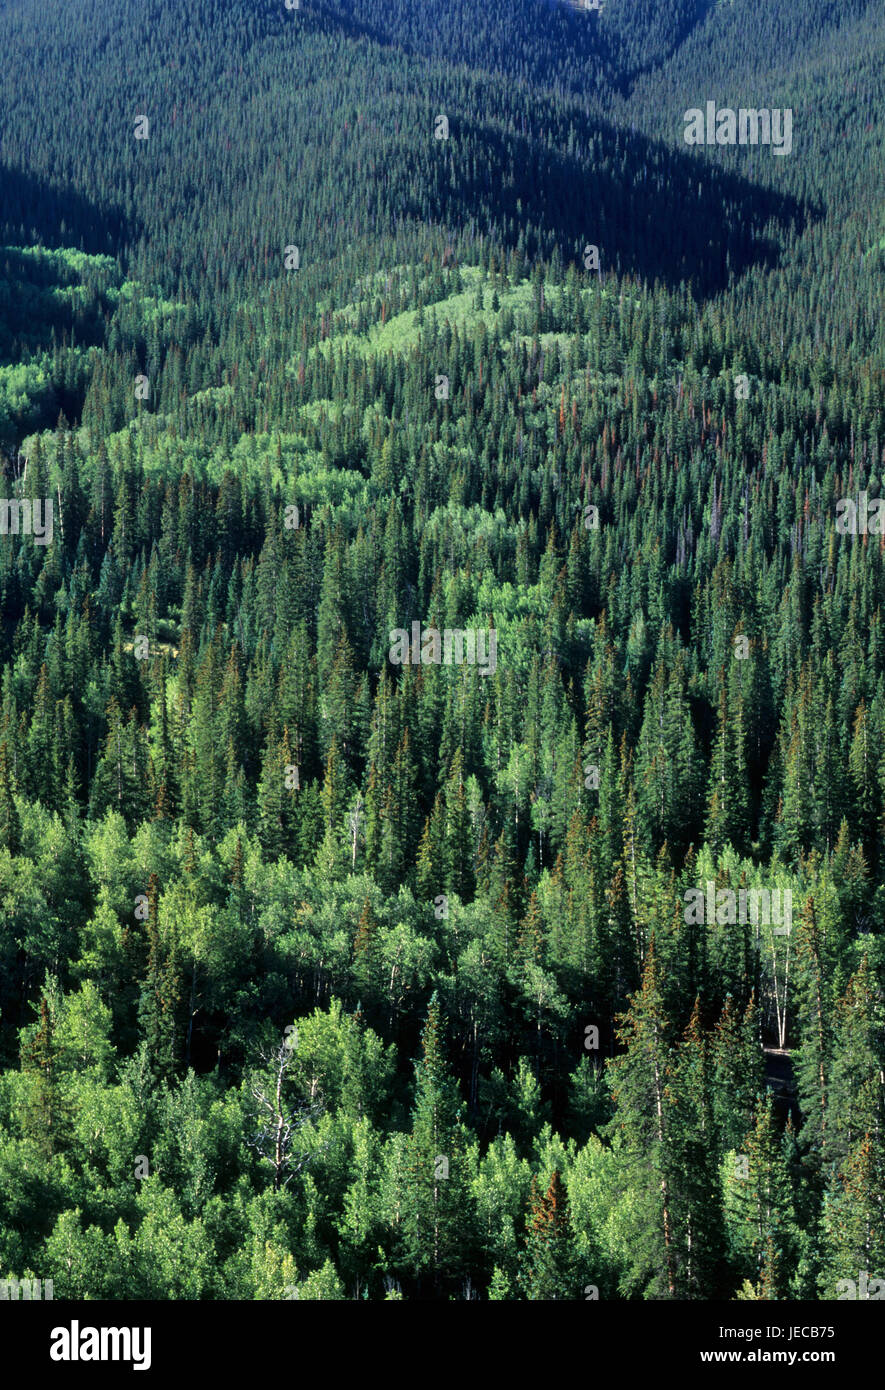 Forest slope, Silver Thread National Scenic Byway, Gunnison National Forest, Colorado - Stock Image